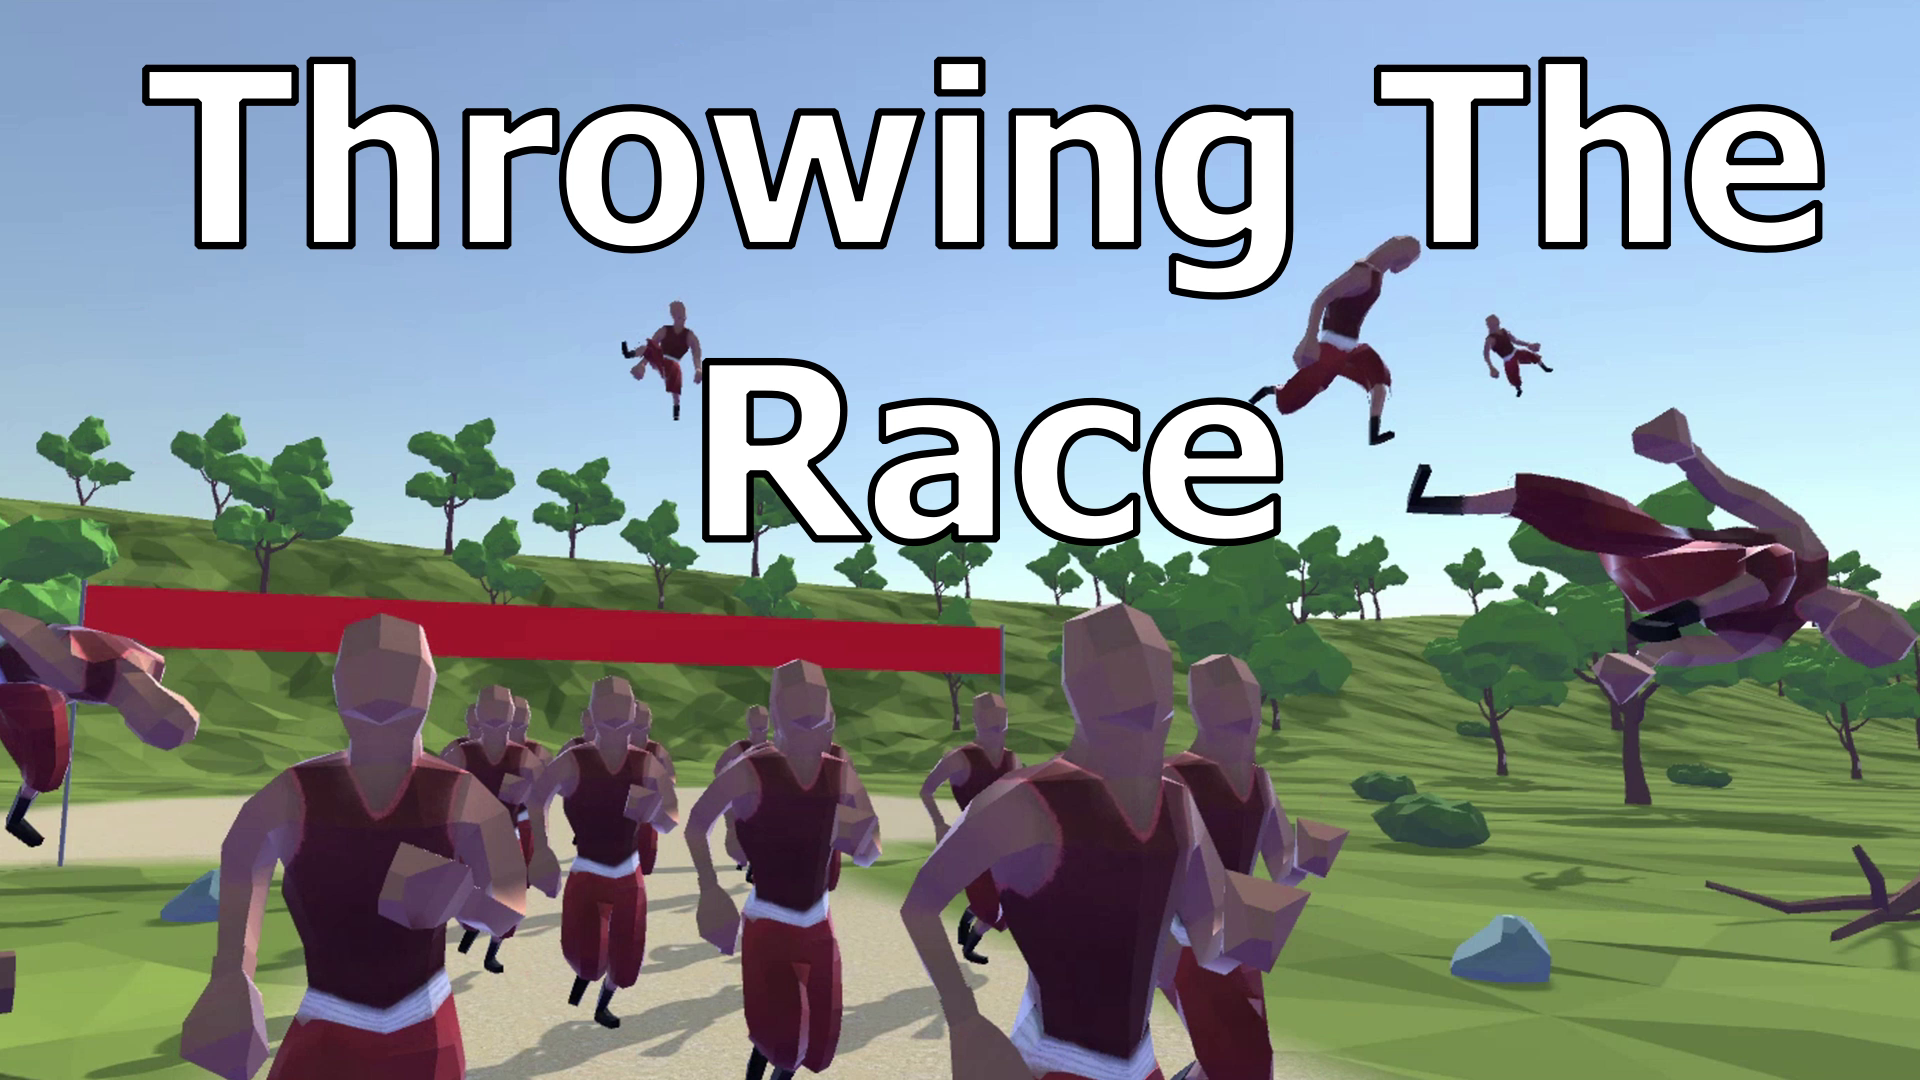 Throwing The Race